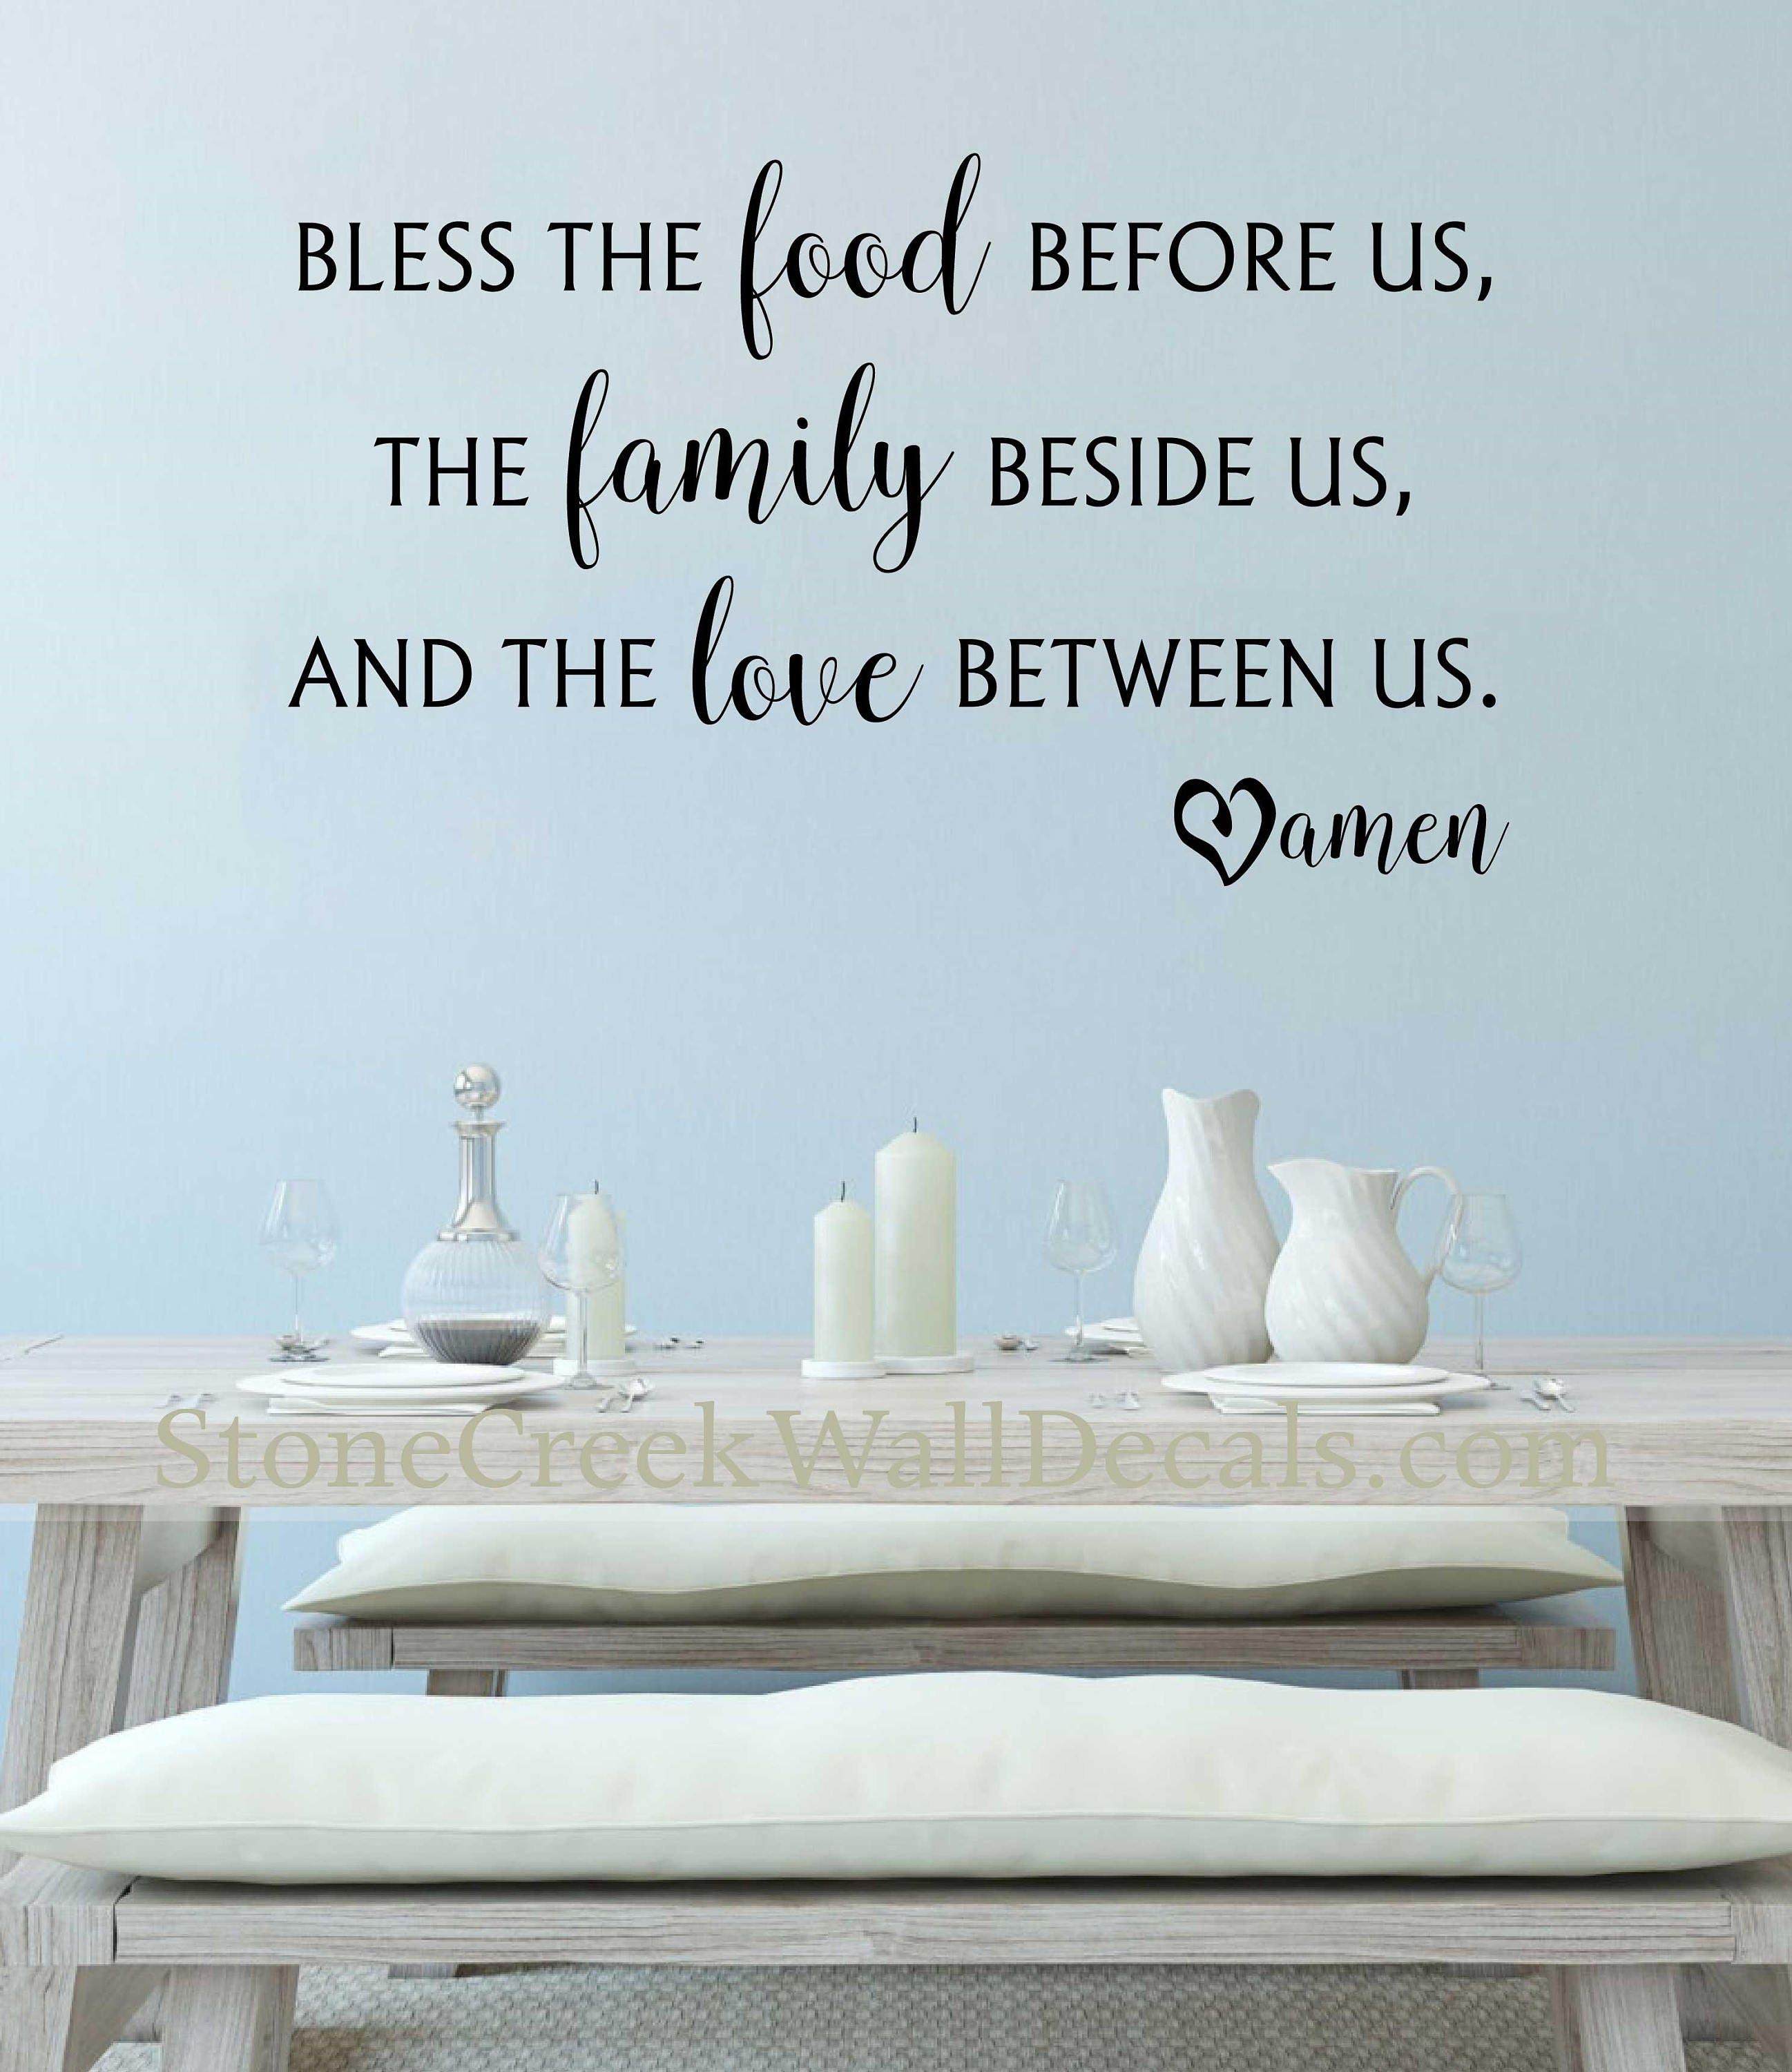 Bless The Food Before Us Wall Decal Kitchen Wall Decal Dining Room Decal  Vinyl Decal Family Wall Decal Meal Prayer Decal Kitchen Decals